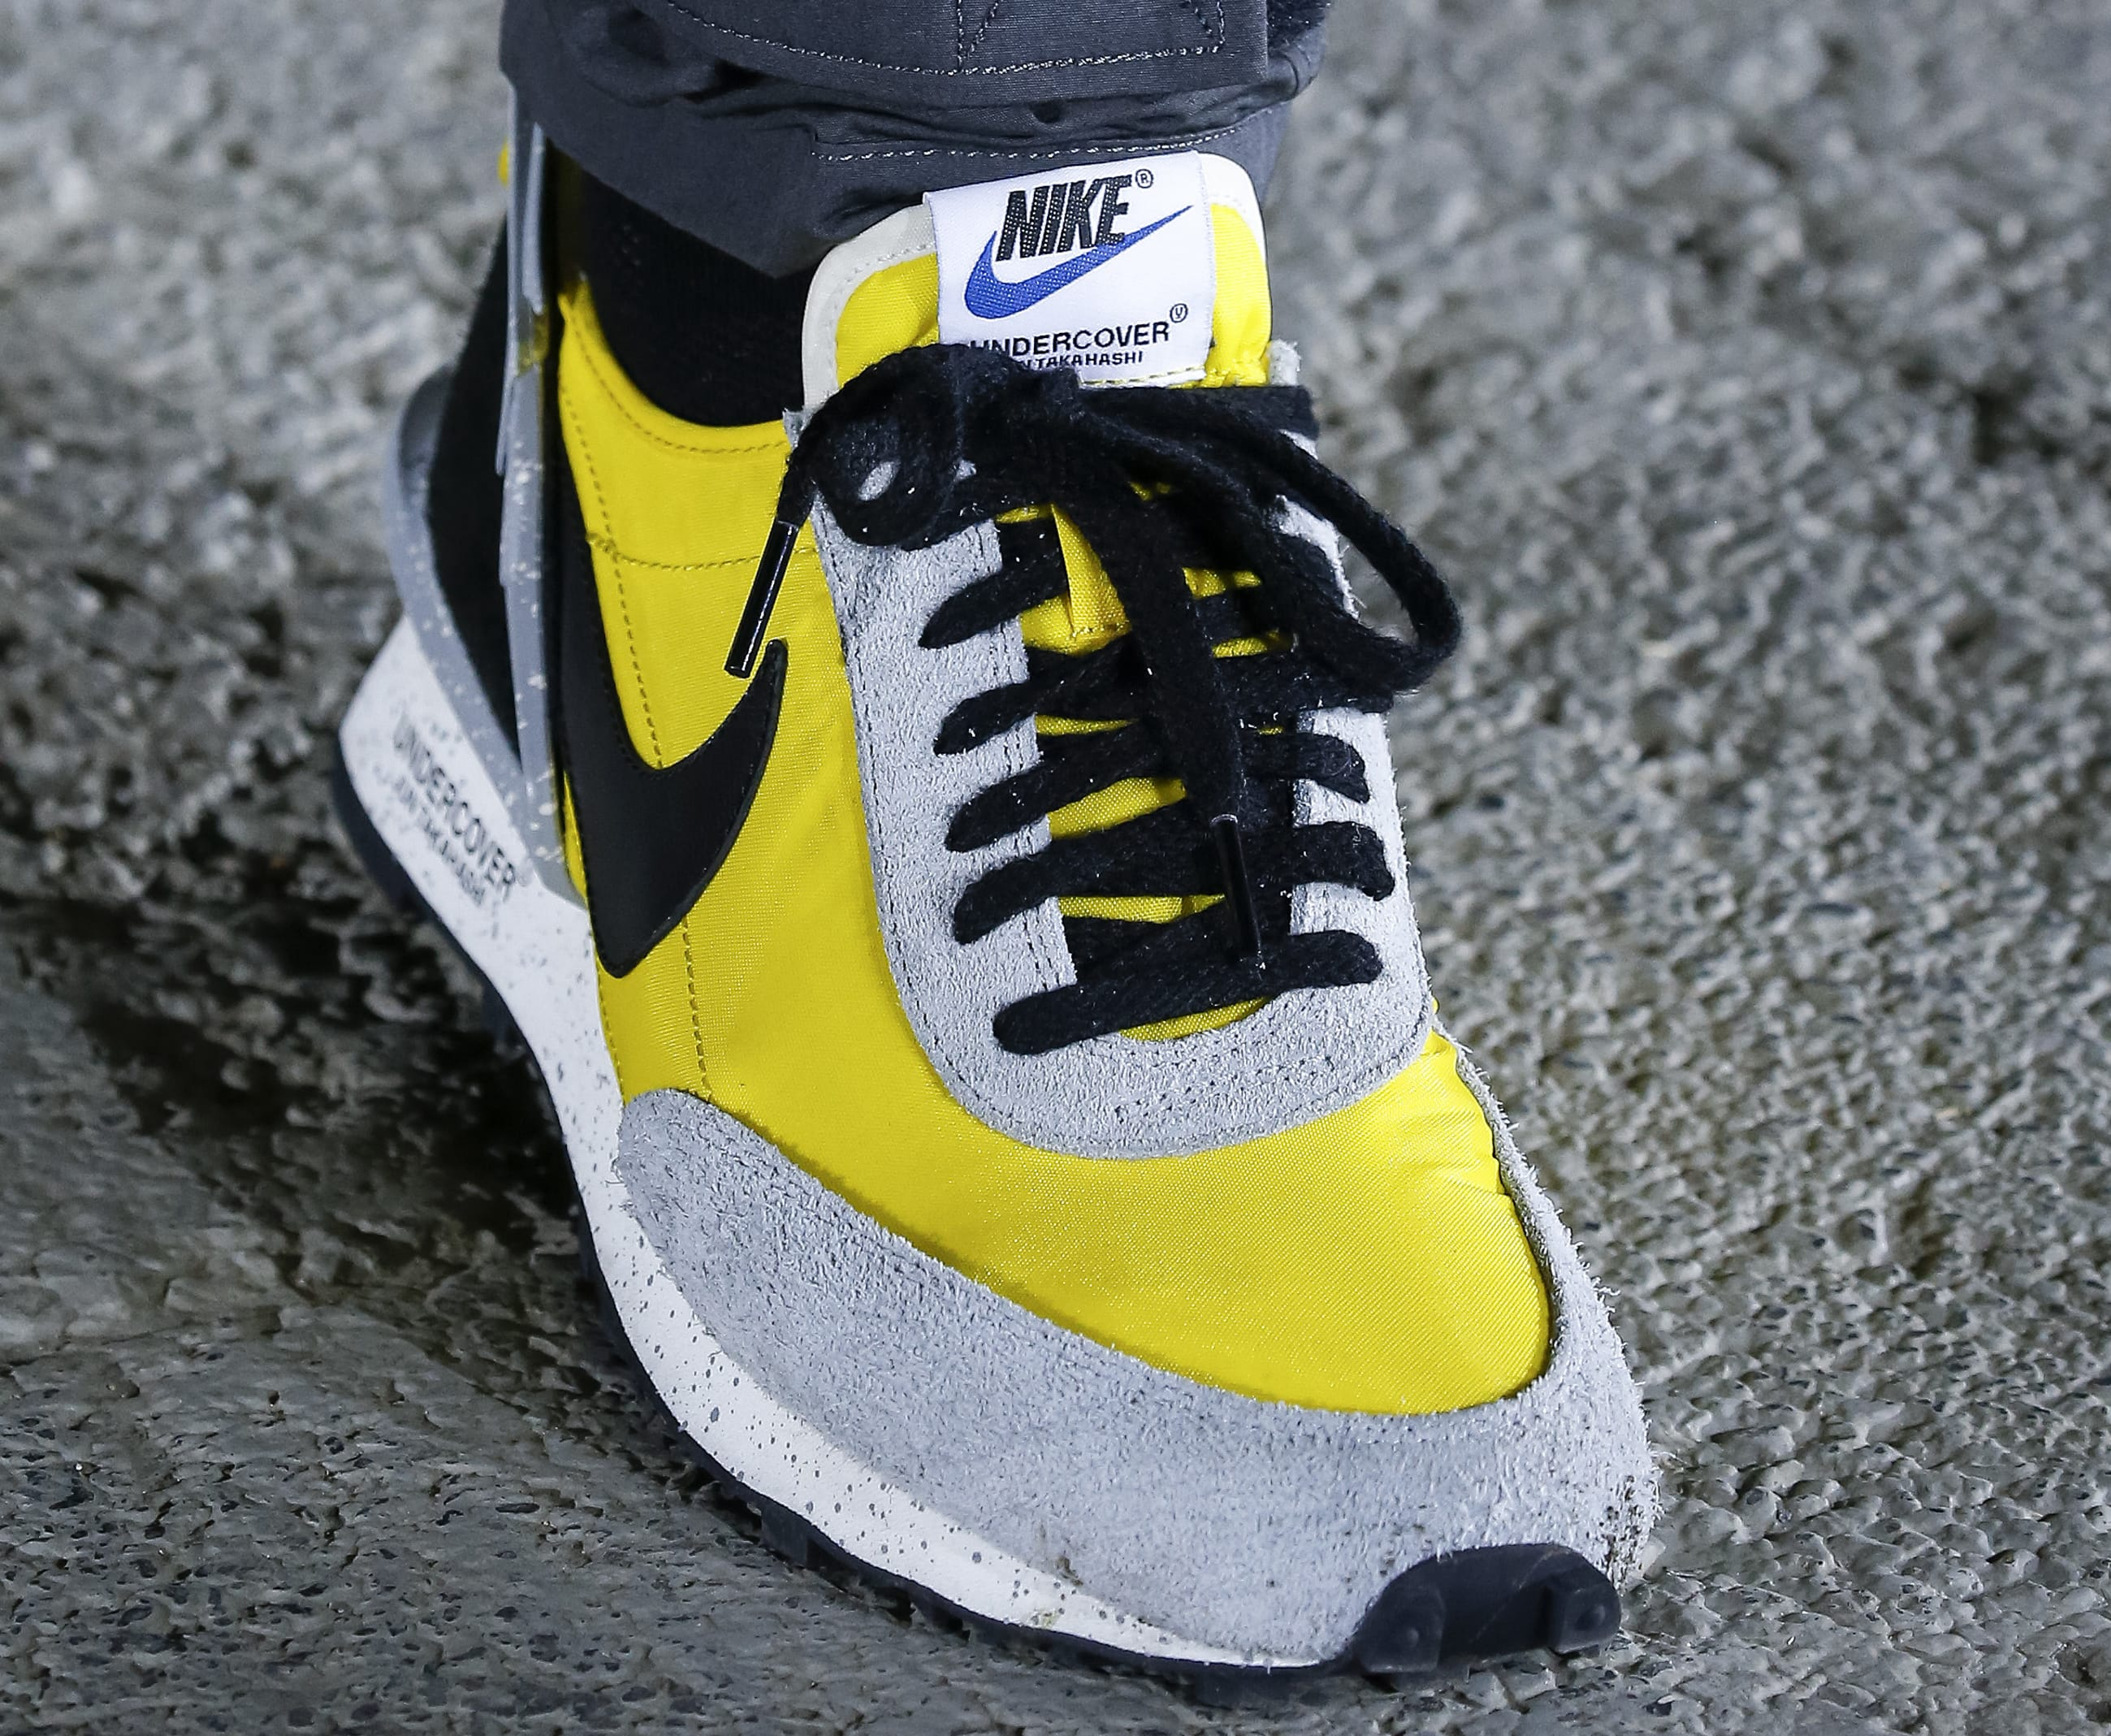 Undercover x Nike Paris Fashion Week Yellow Low-Top